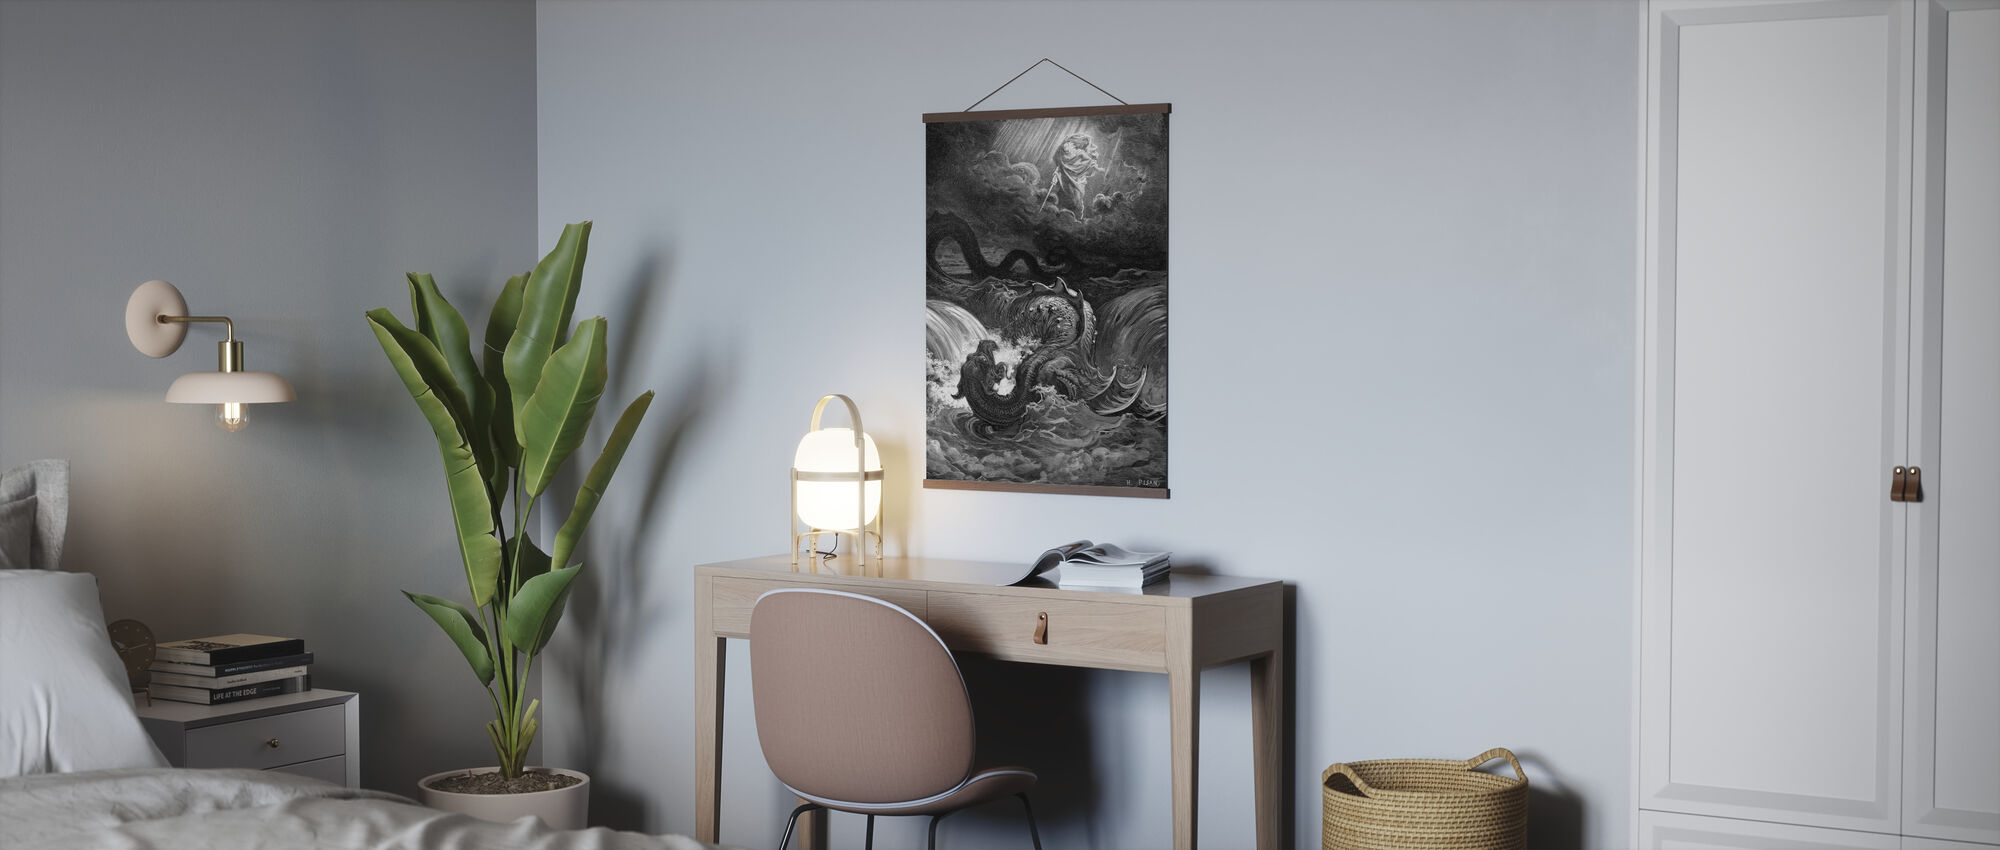 Esaias Syn - Gustave Dore - Poster - Büro